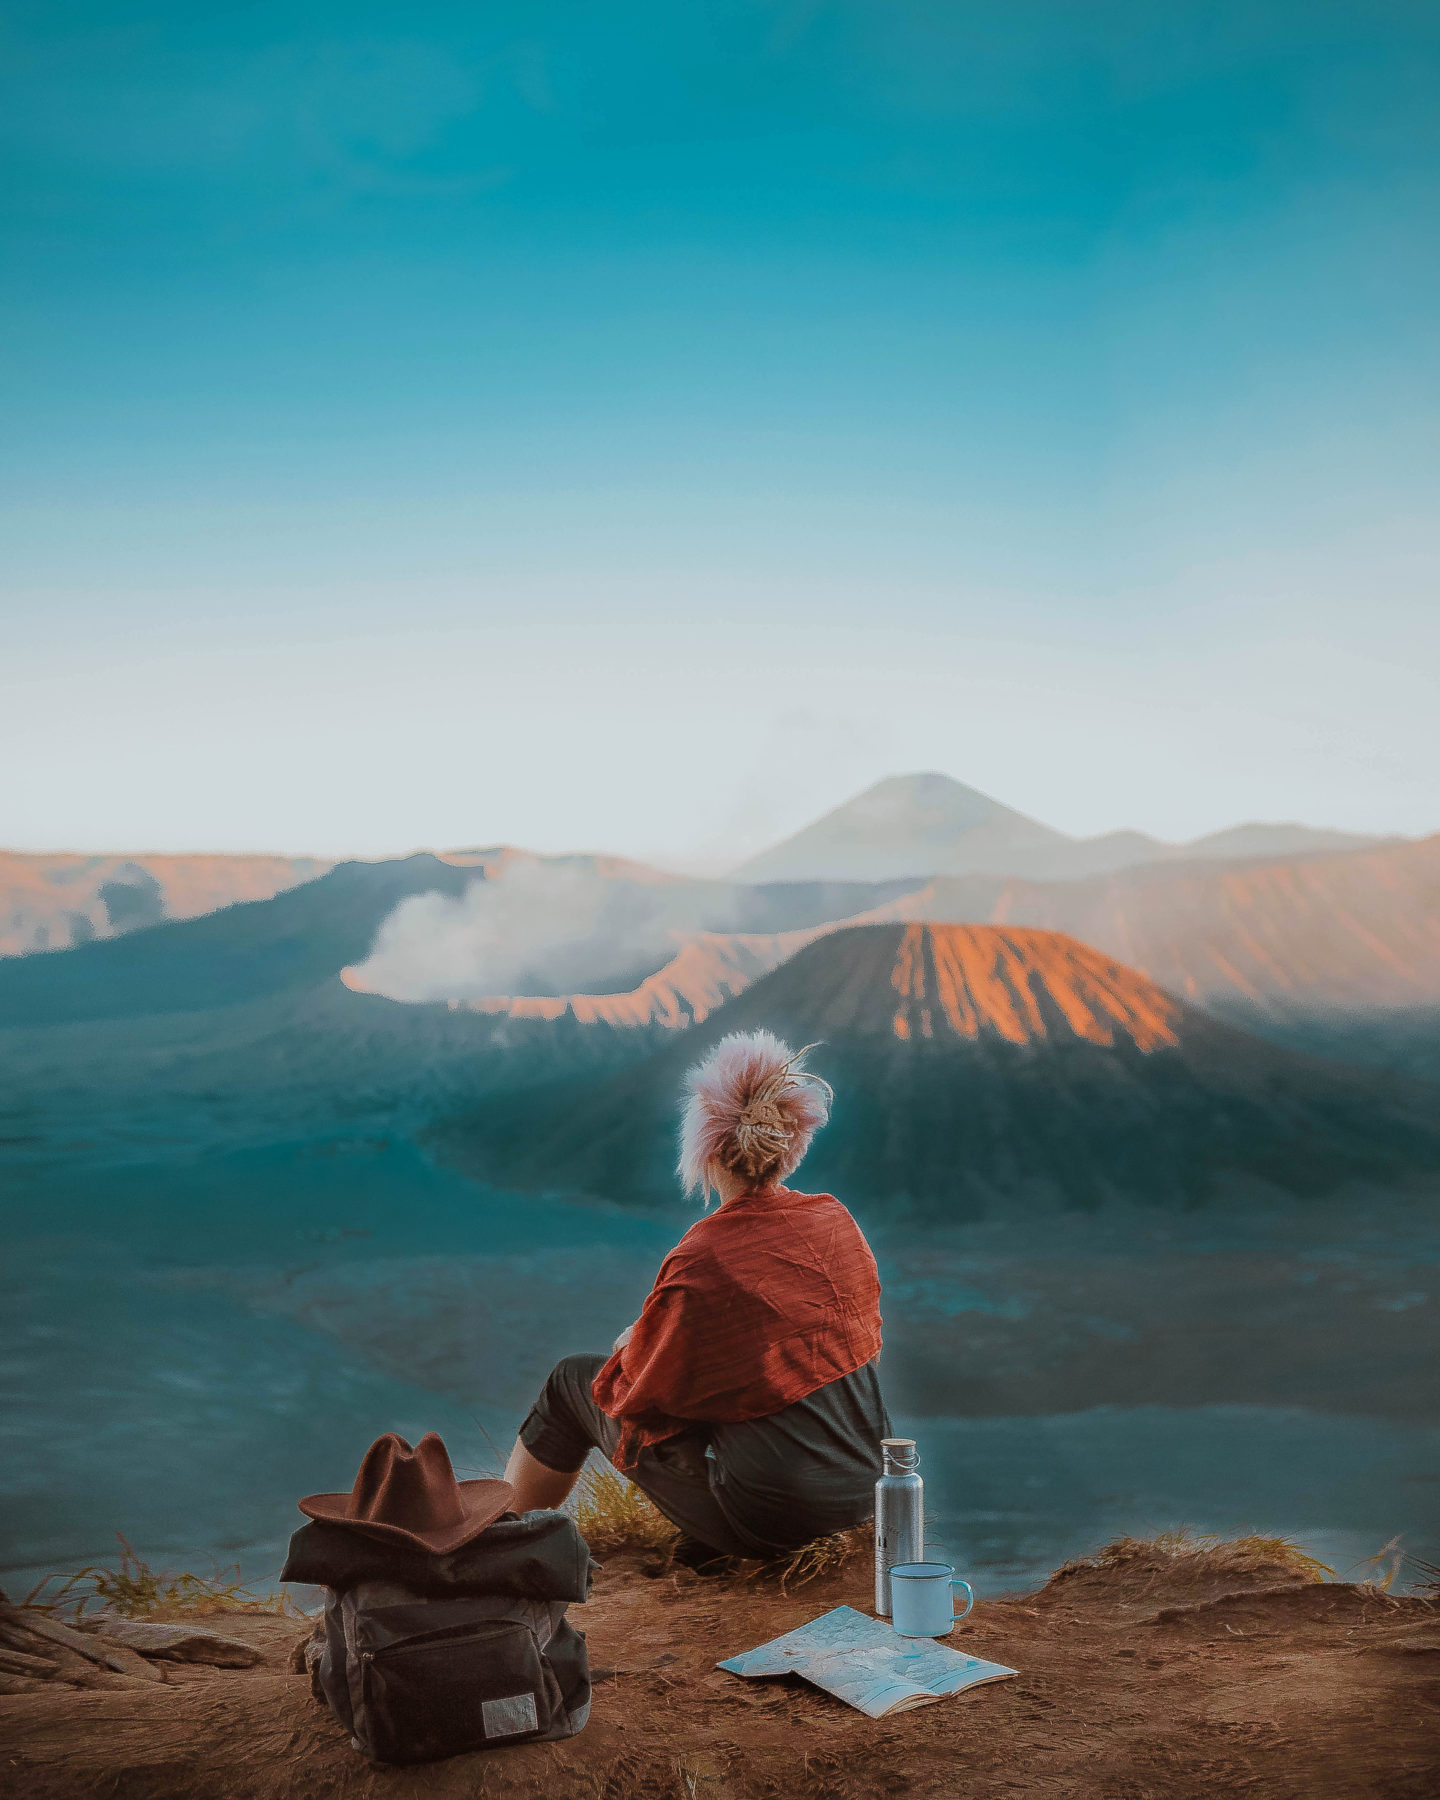 hiking volcano mount bromo summit viewpoint indonesia east java highlight mountains blue sky